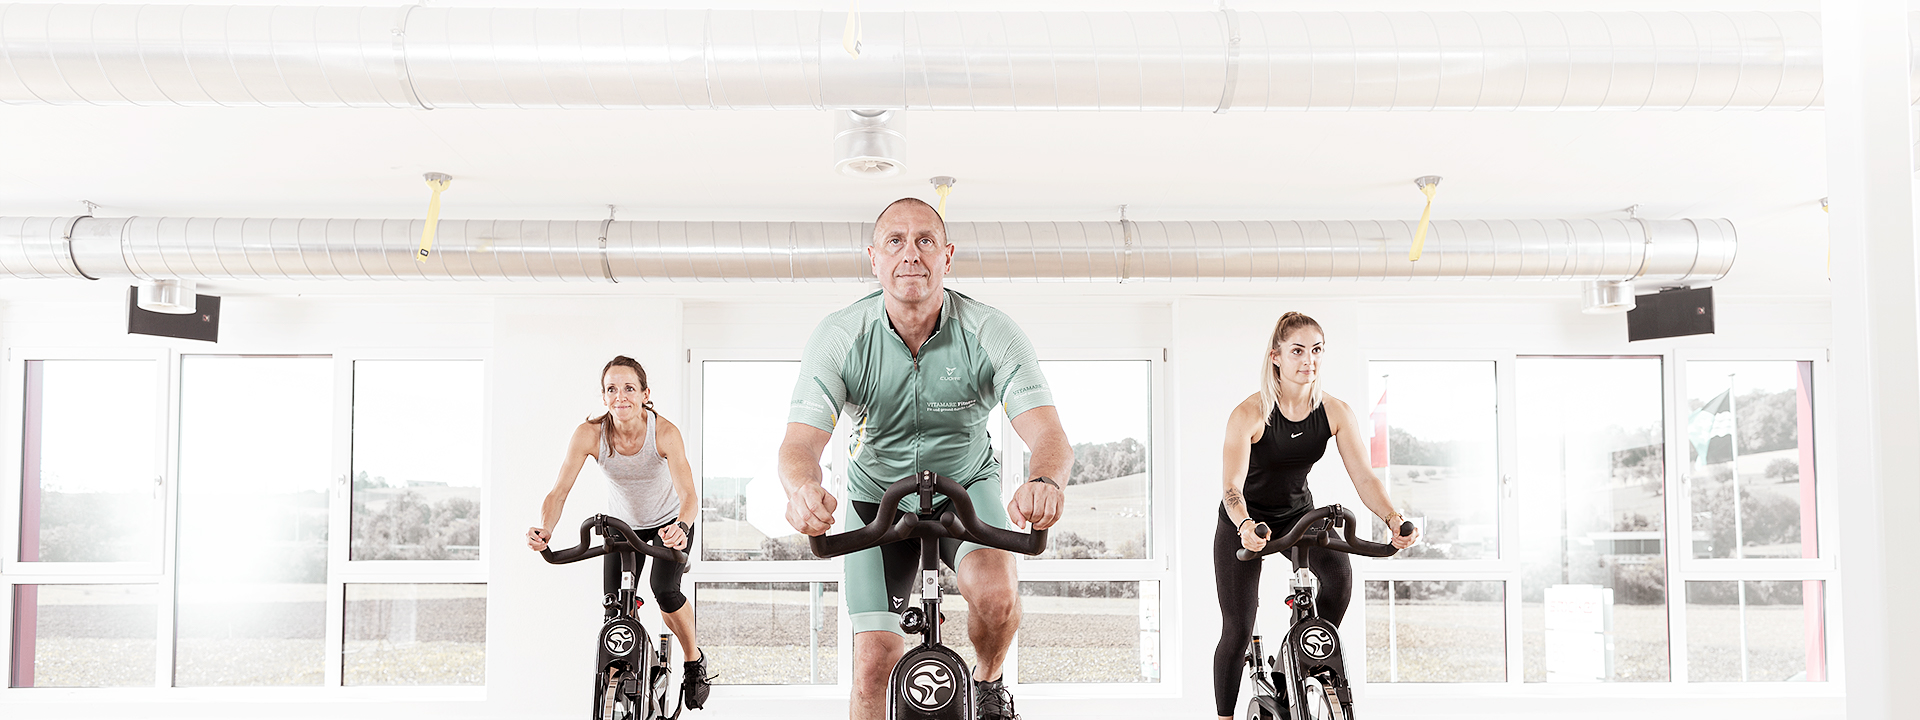 Group Fitness Spinning